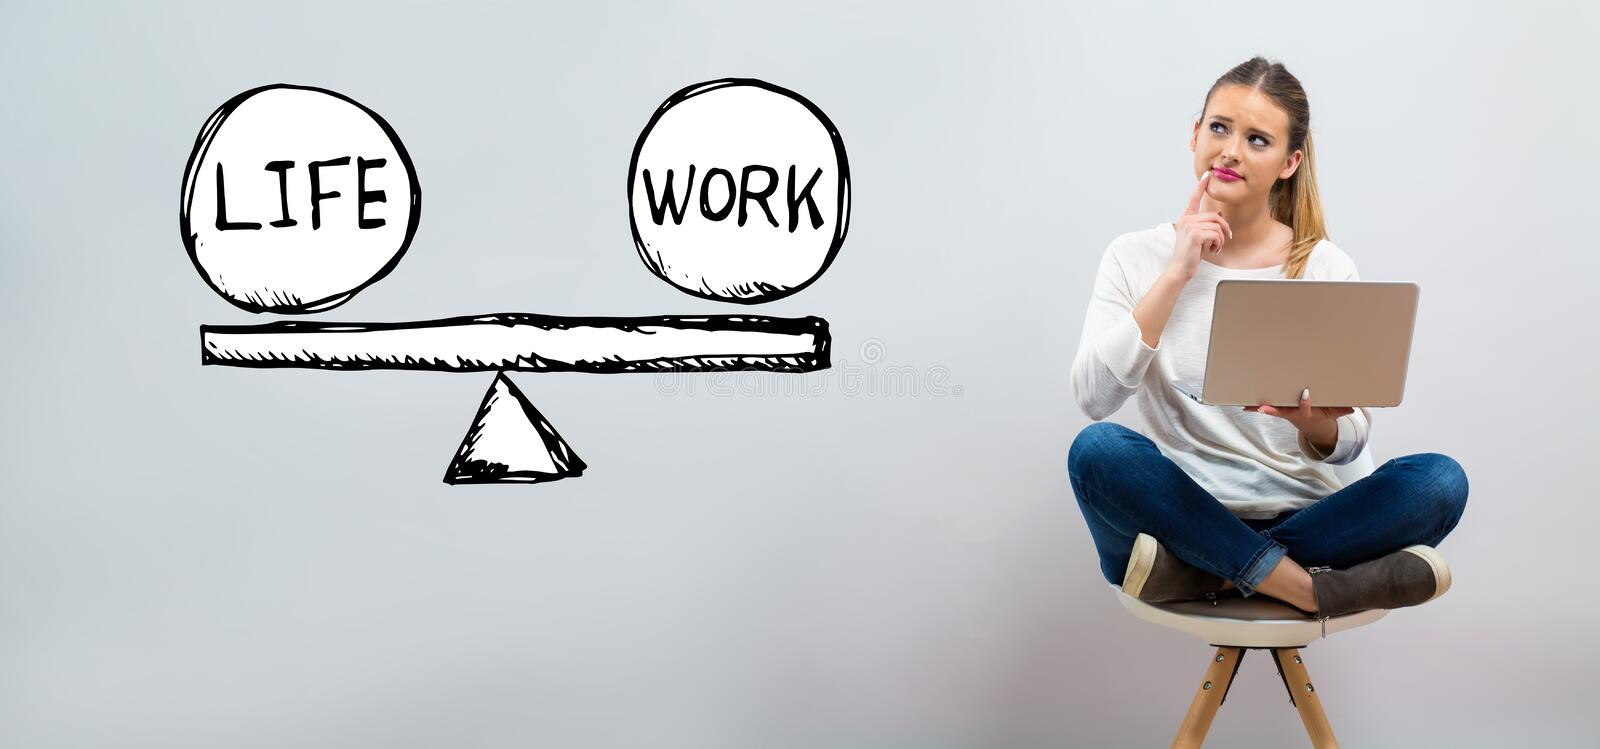 Life and work balance with young woman using her laptop vector illustration